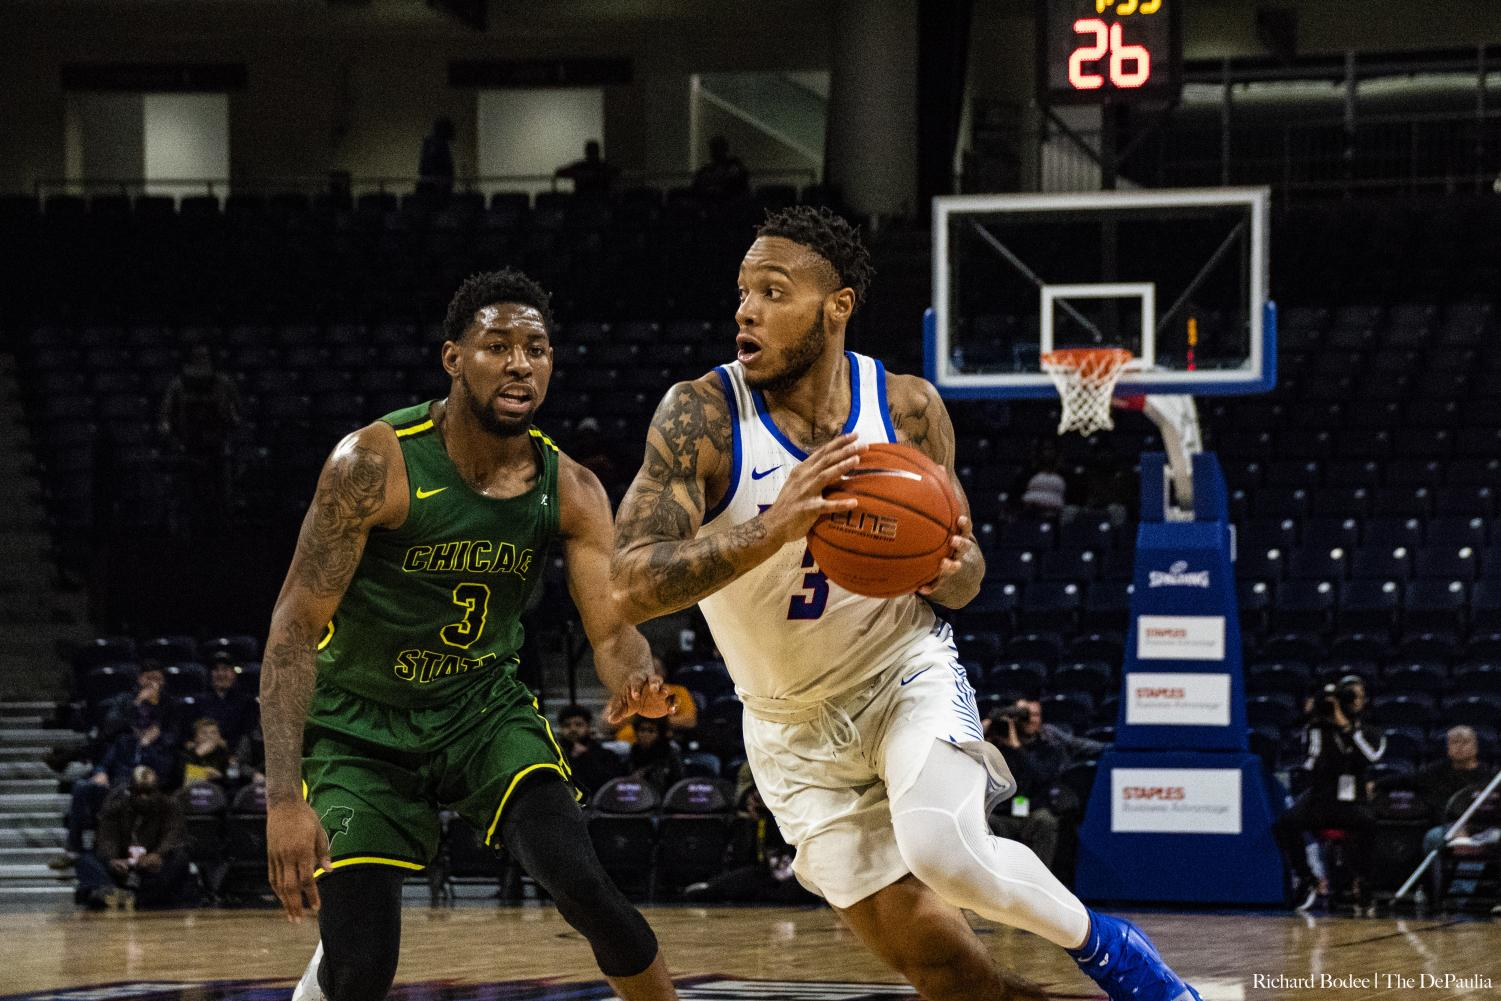 DePaul sophomore guard Devin Gage drives past Chicago State guard Savon Bell Wednesday night at Wintrust Arena. Richard Bodee | The DePaulia